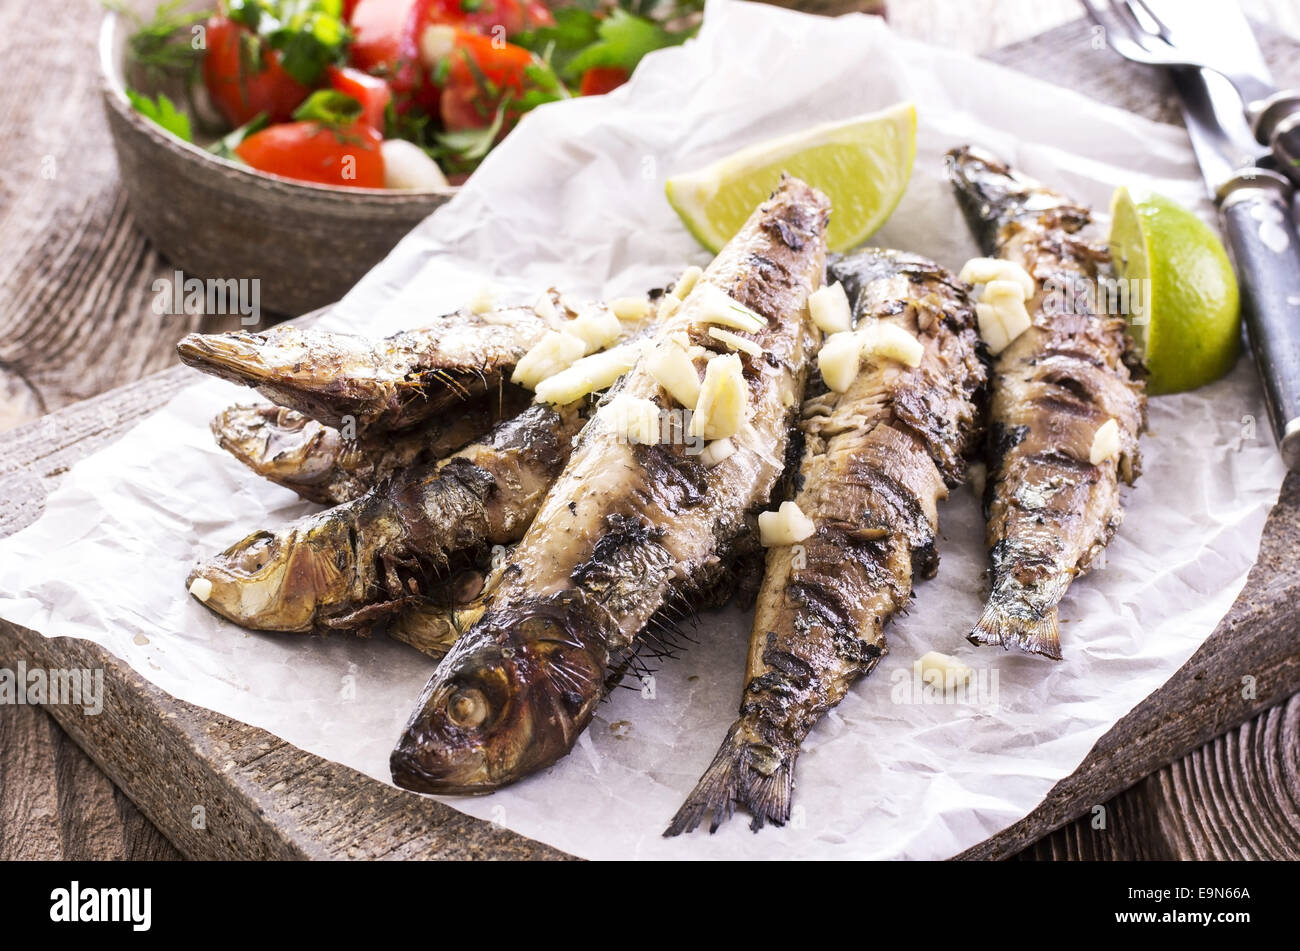 Fettarme Mediterrane Küche Grilled Sardines Stock Photo 74839250 Alamy